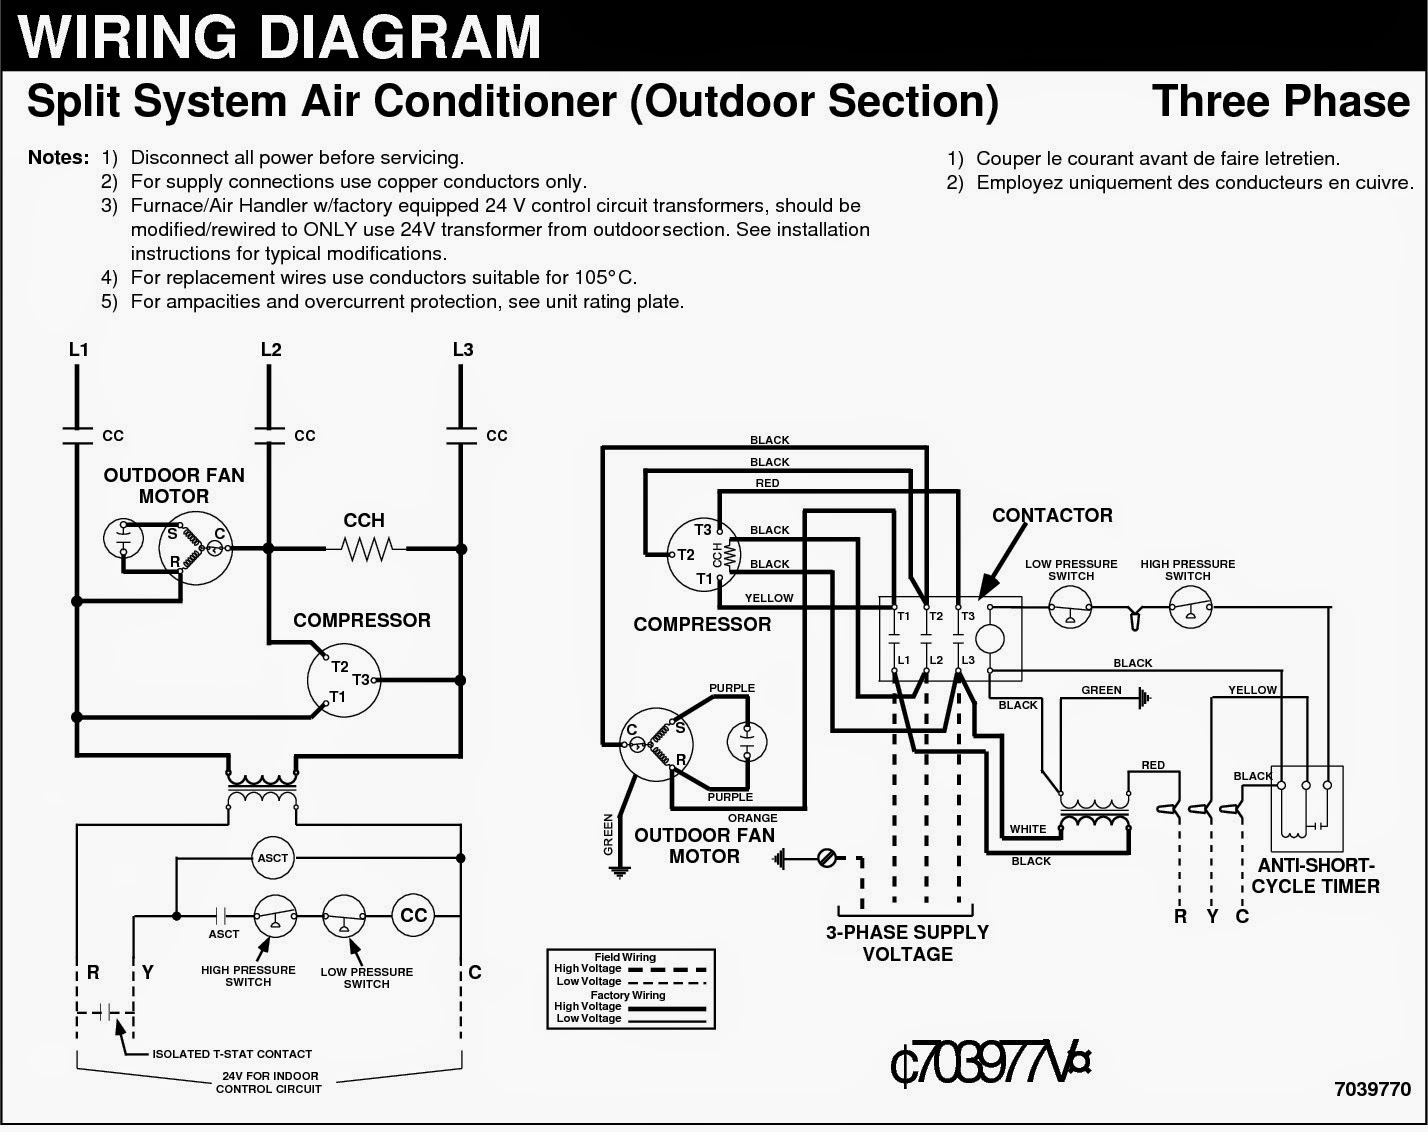 Electrical Wiring Diagrams For Air Conditioning Systems Part Two Ac Power Adapter Diagram Get Free Image About Fig13 Split Cooling Units Three Phase